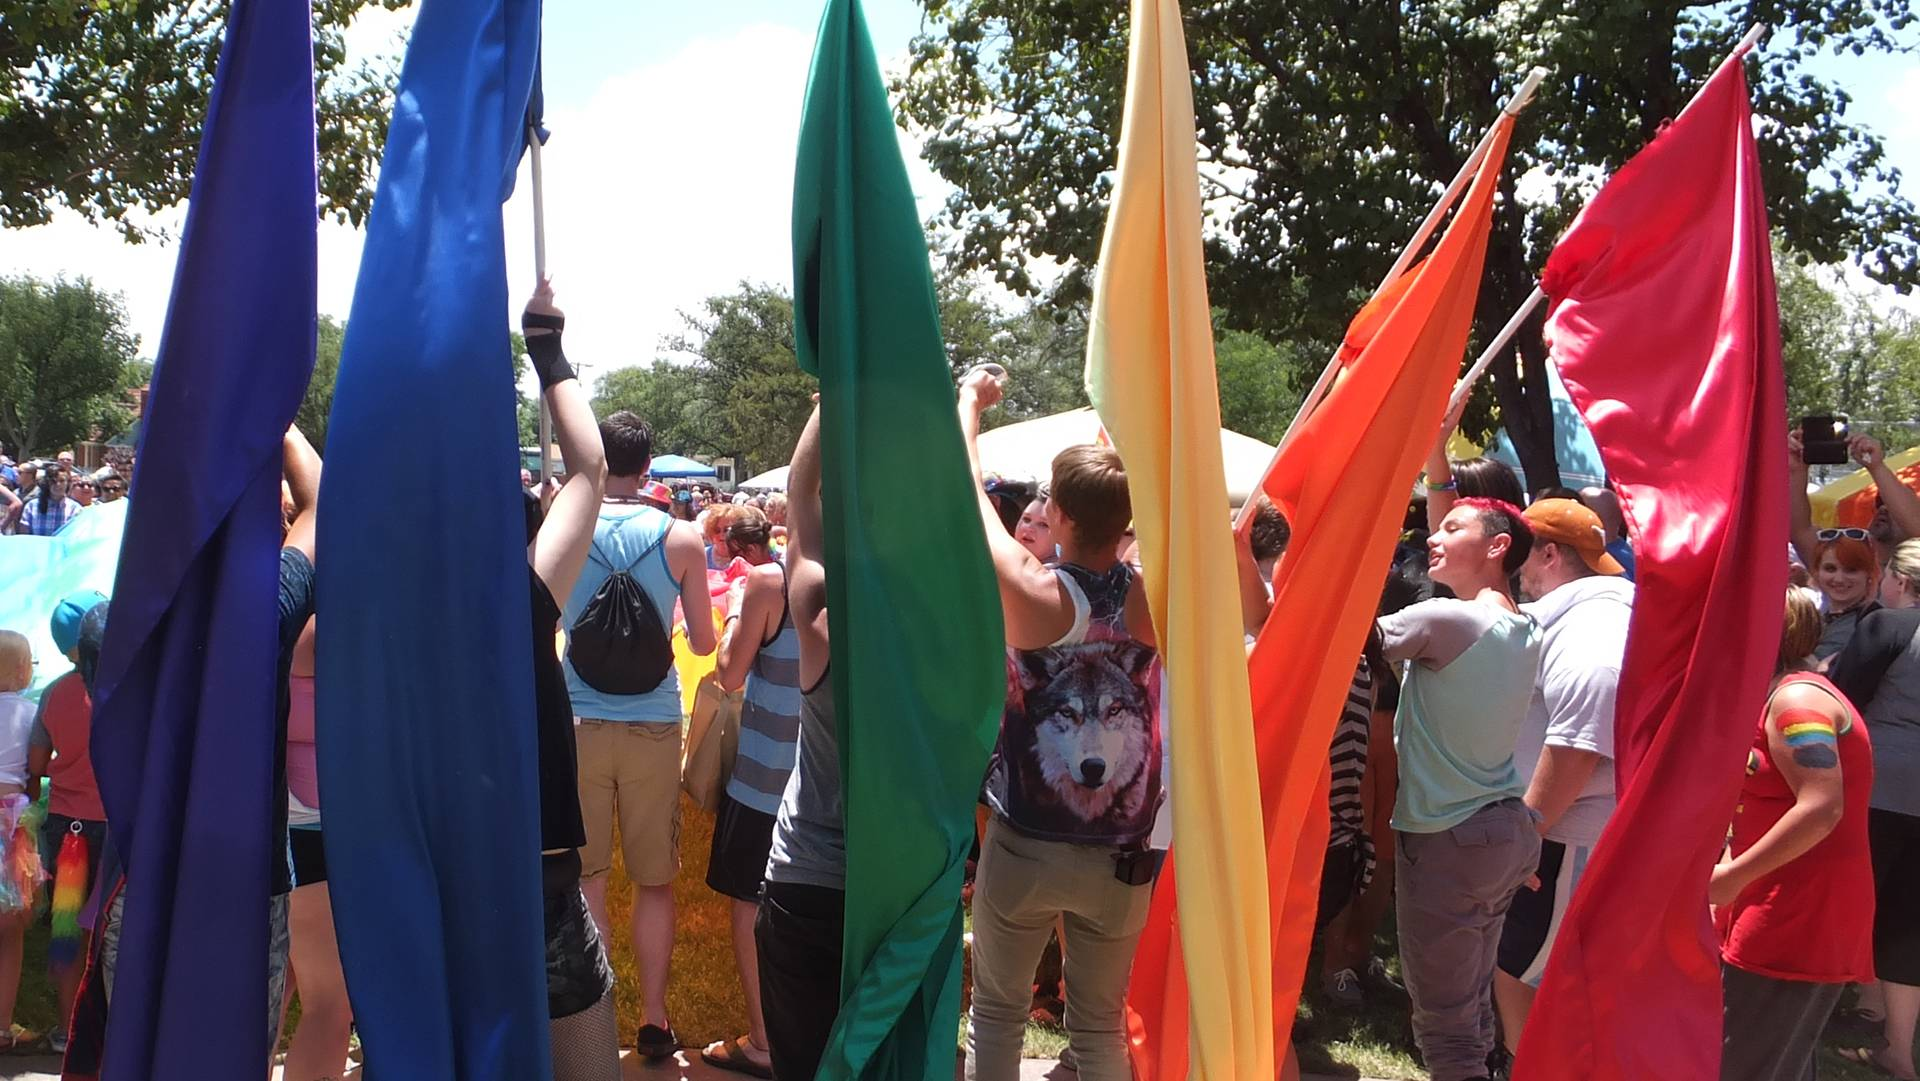 Pride Week festivities to include film festival, dance party, community picnic, more